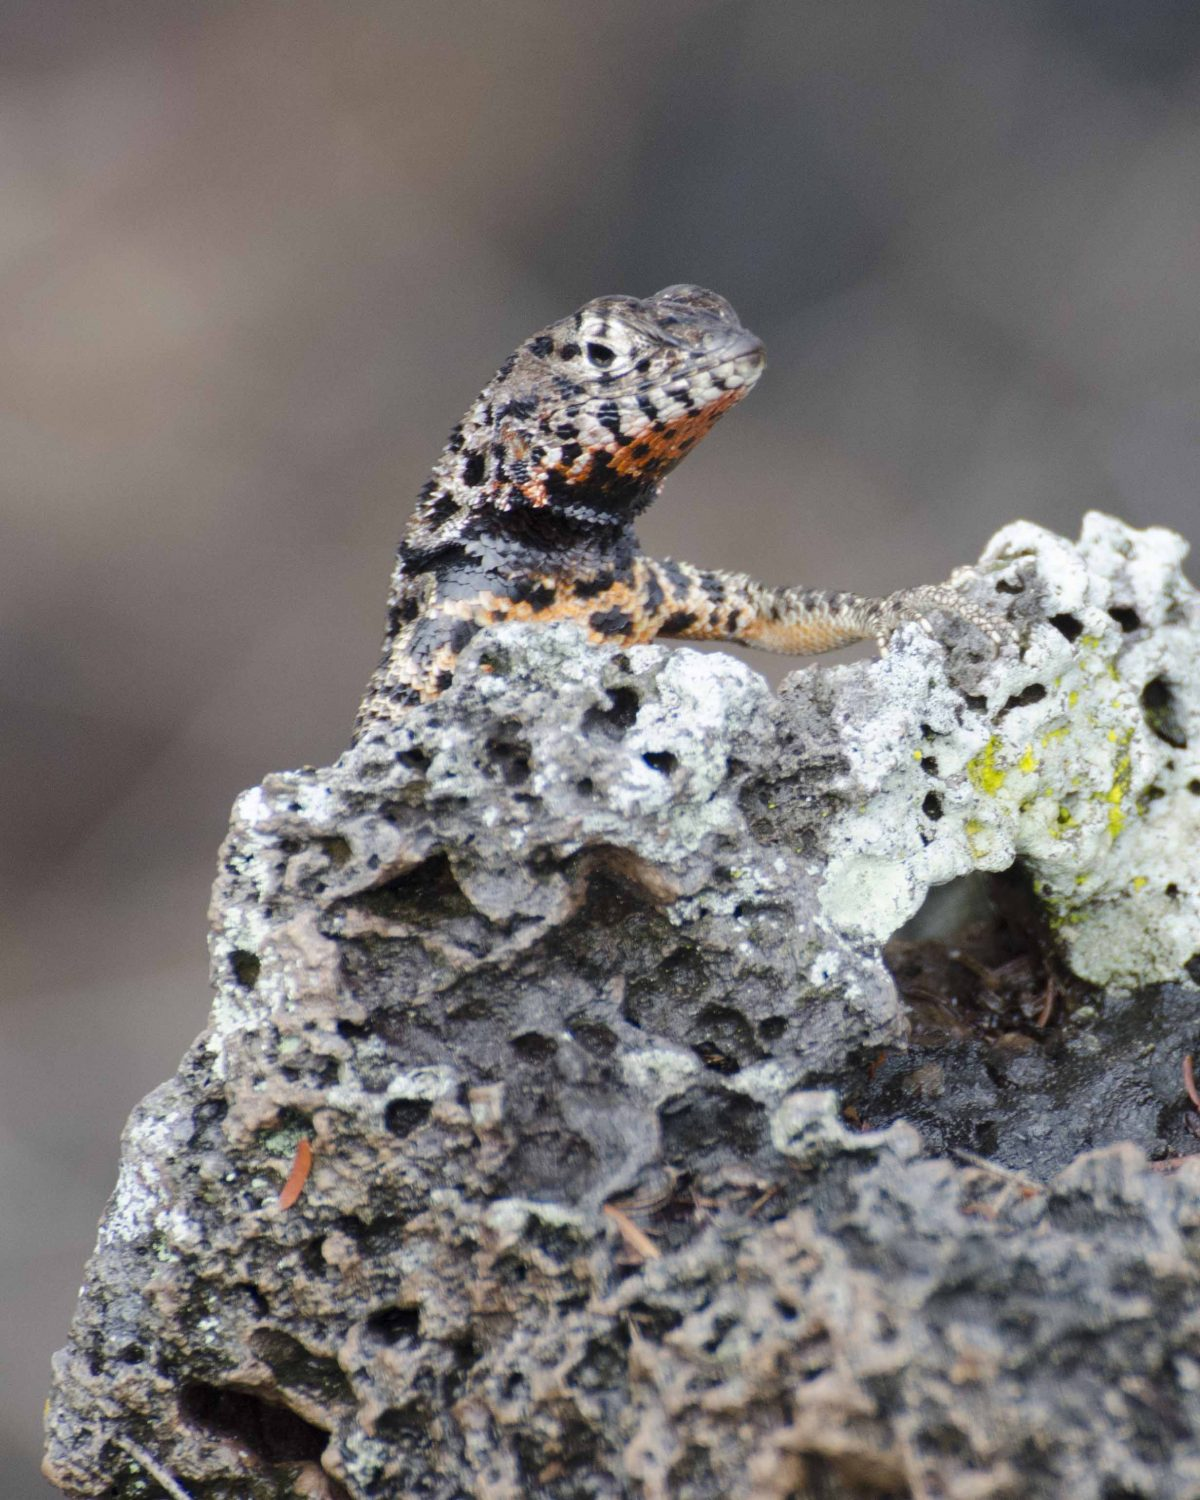 Lava Lizard, the Galapagos